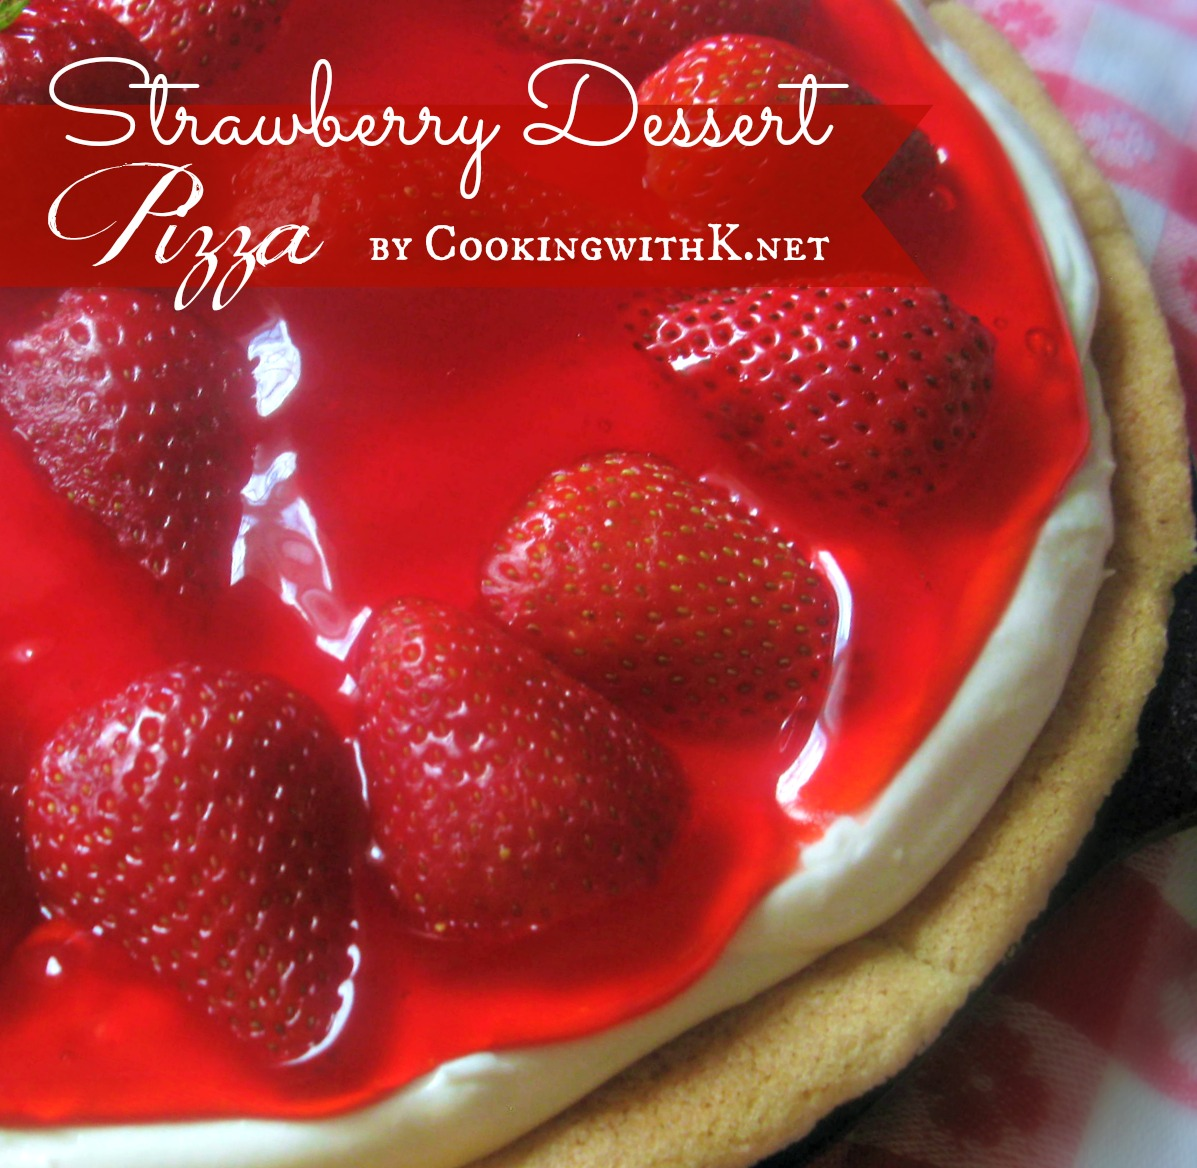 Delicious Dessert for July 4th! Easy Strawberry Dessert Pizza